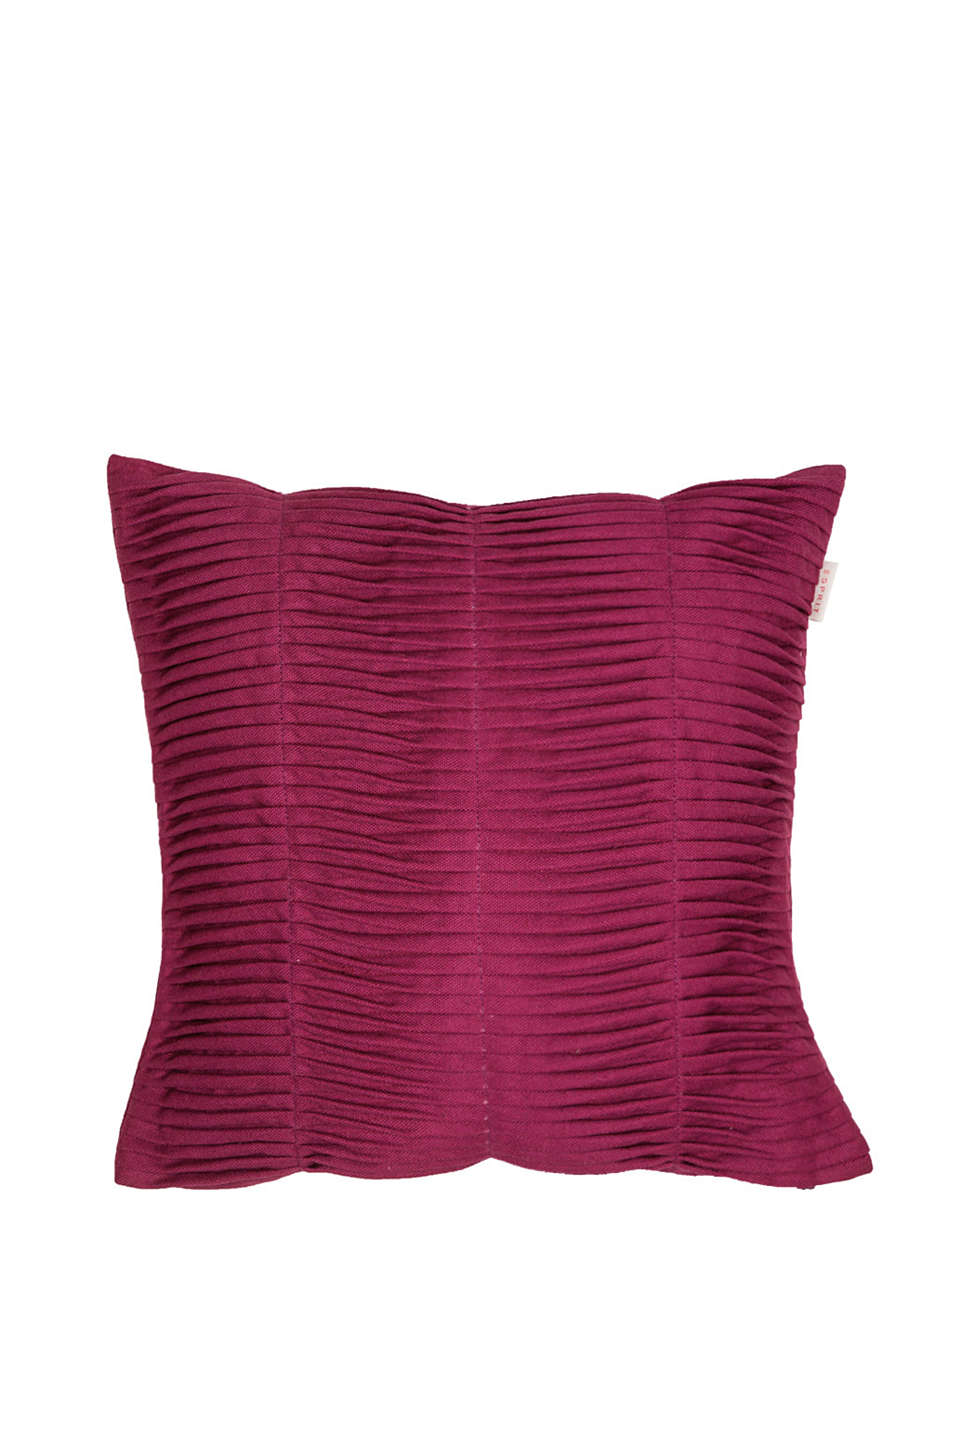 Esprit - Cushion cover with pleated front